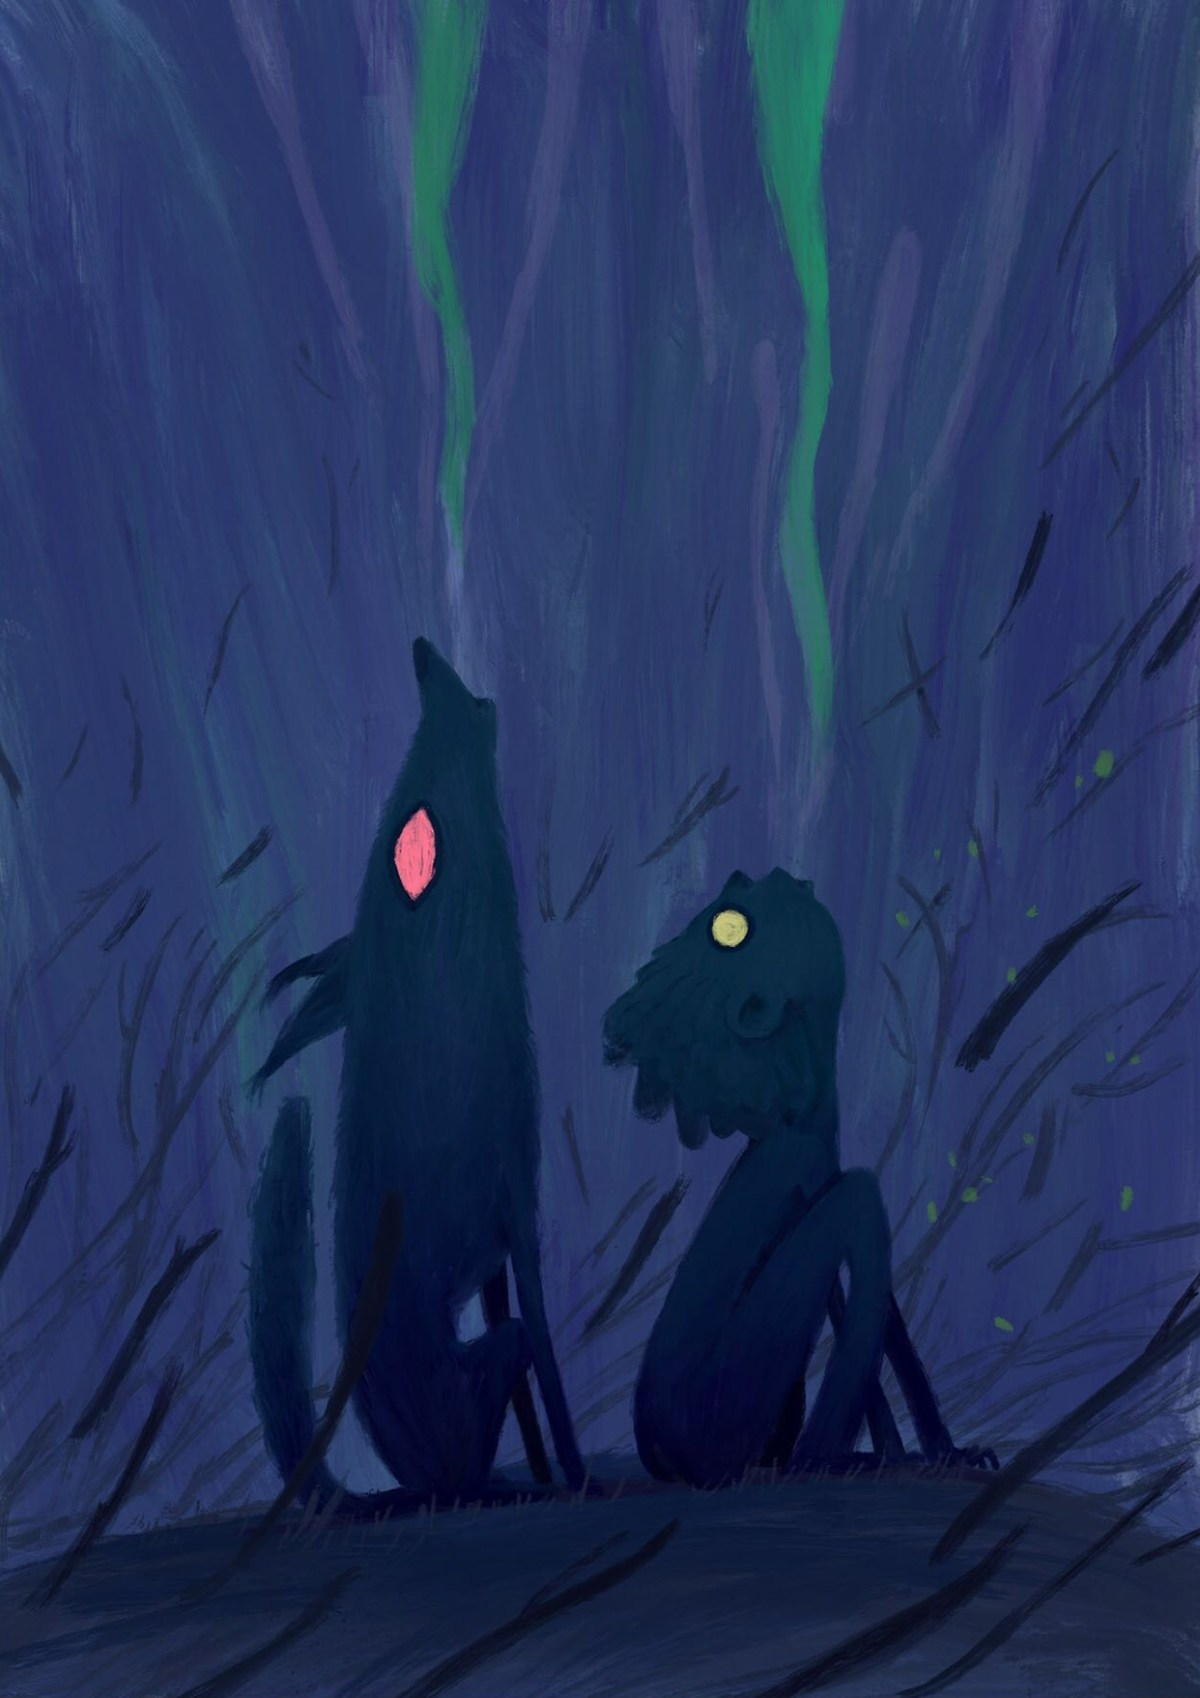 childhoodWeek-moss-and-fog-5